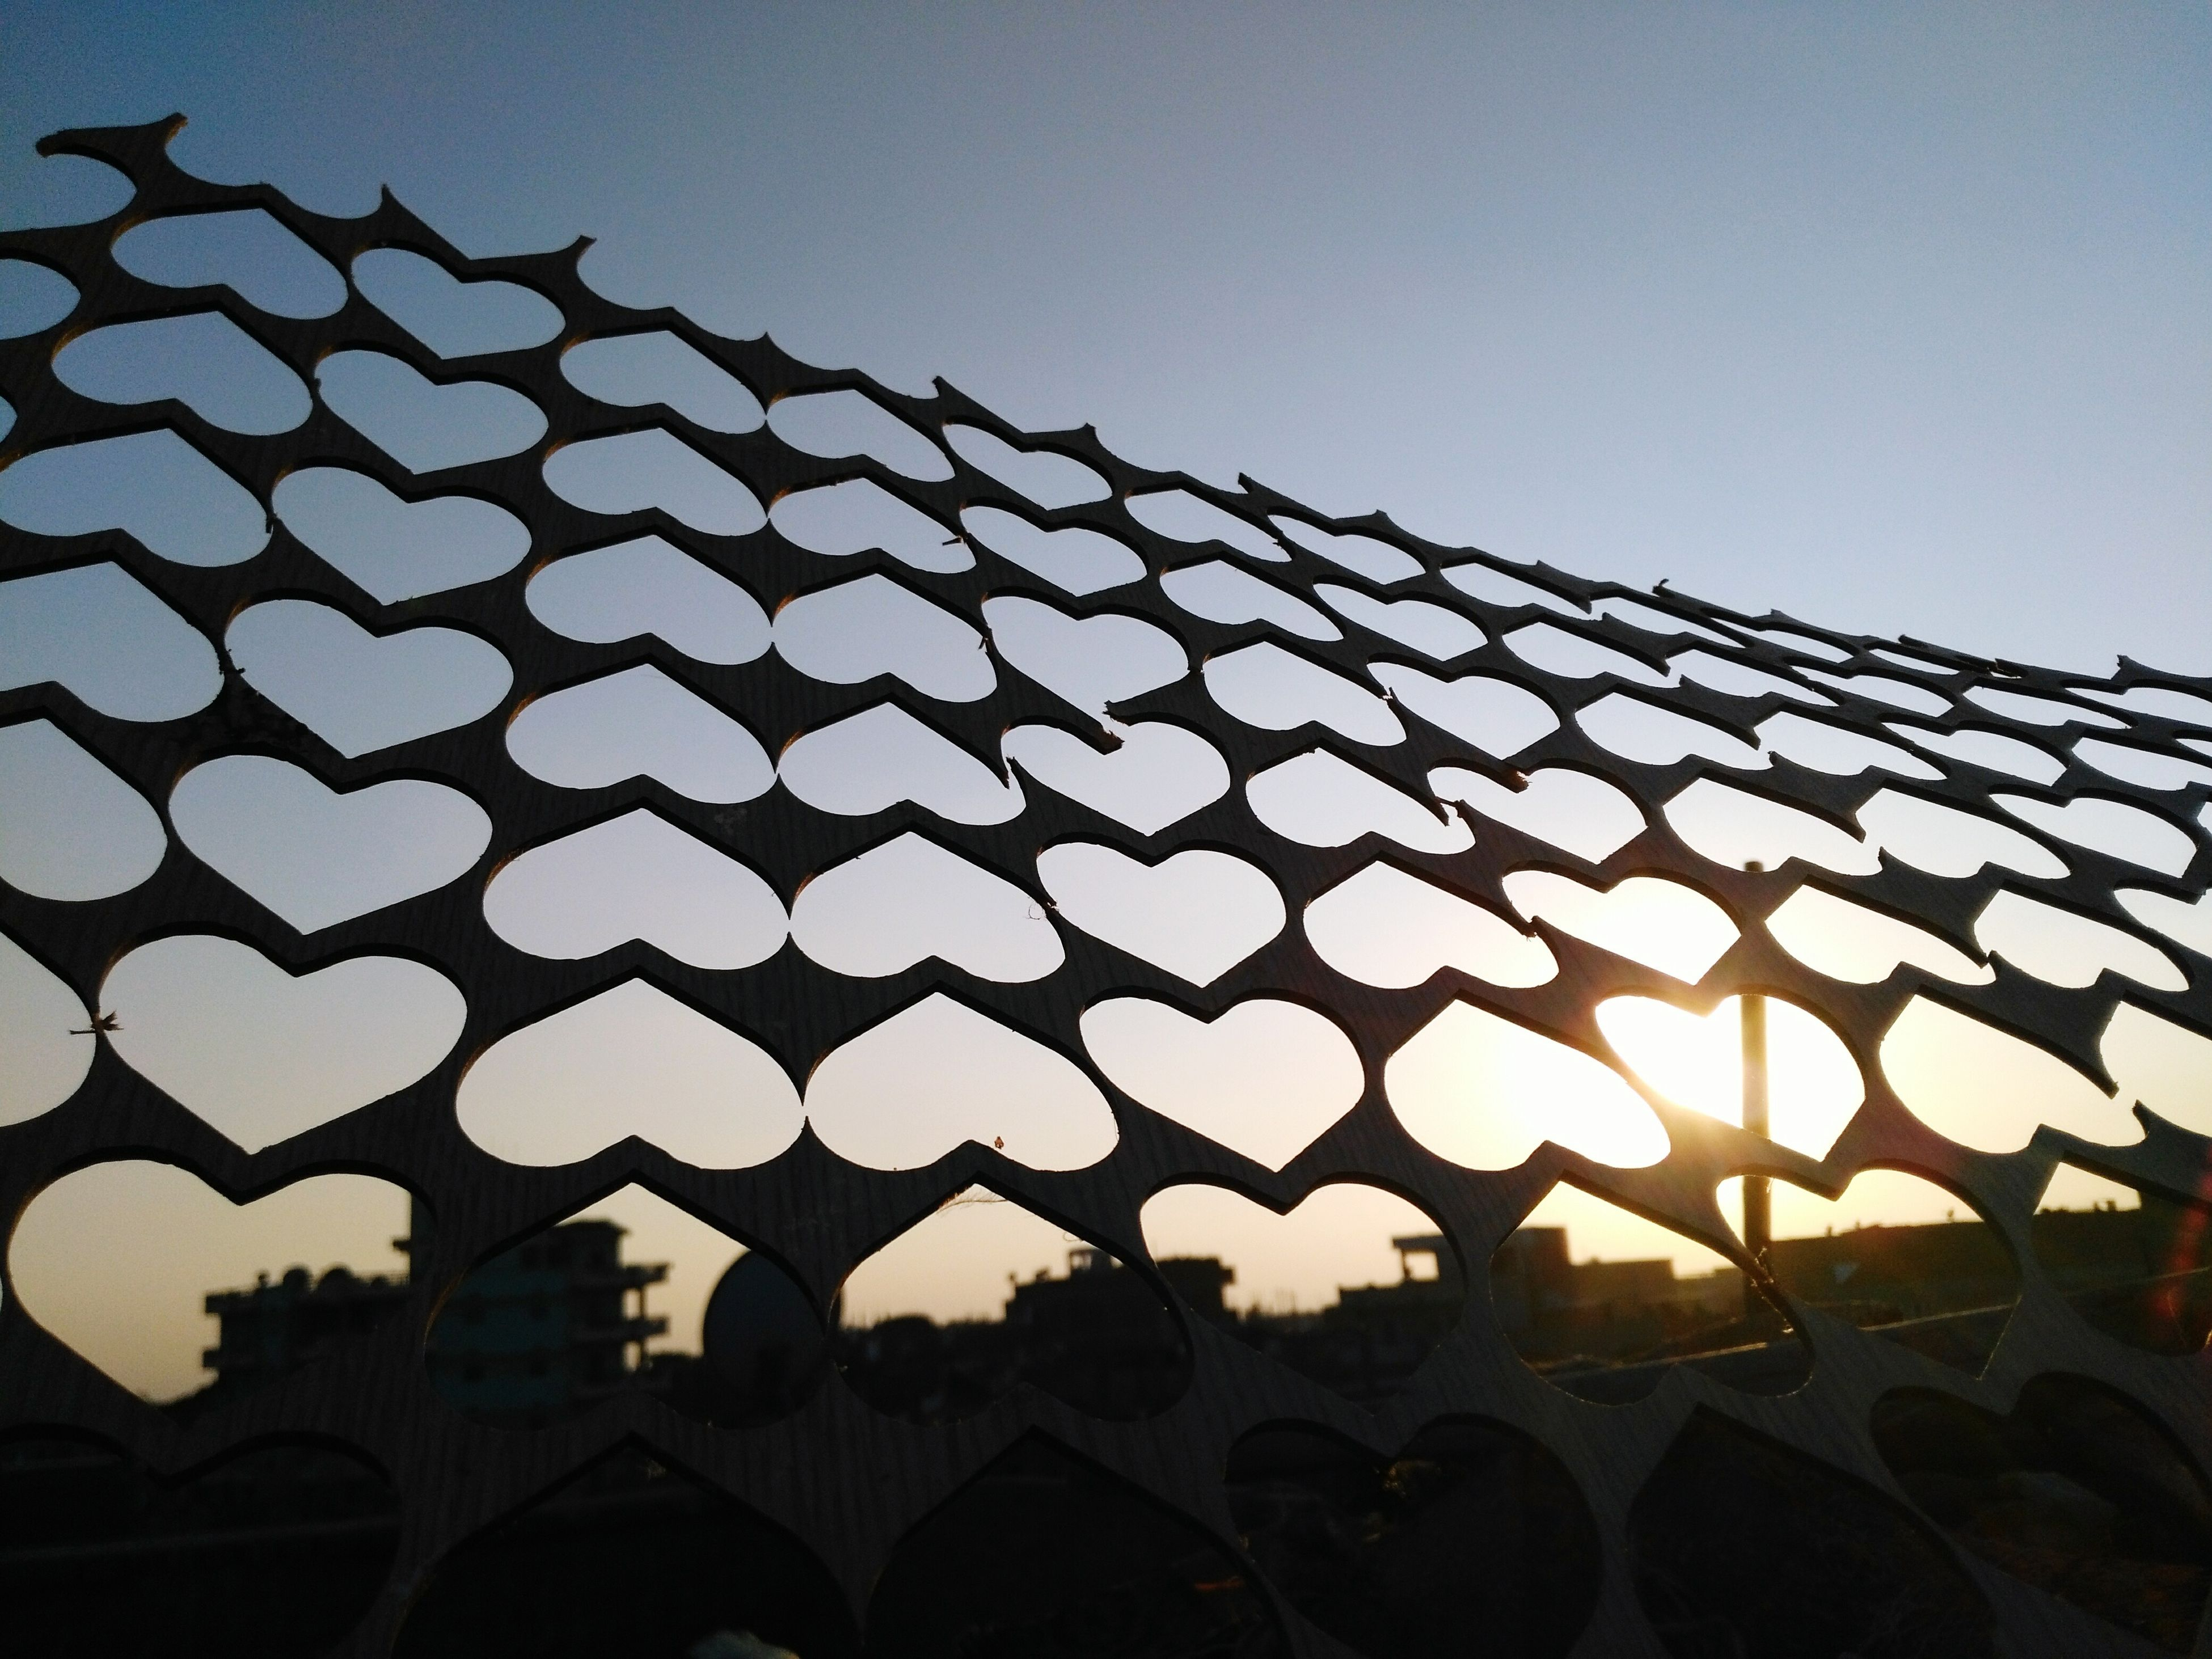 protection, safety, fence, clear sky, silhouette, pattern, architecture, low angle view, sky, building exterior, outdoors, chainlink fence, architectural feature, geometric shape, no people, arrangement